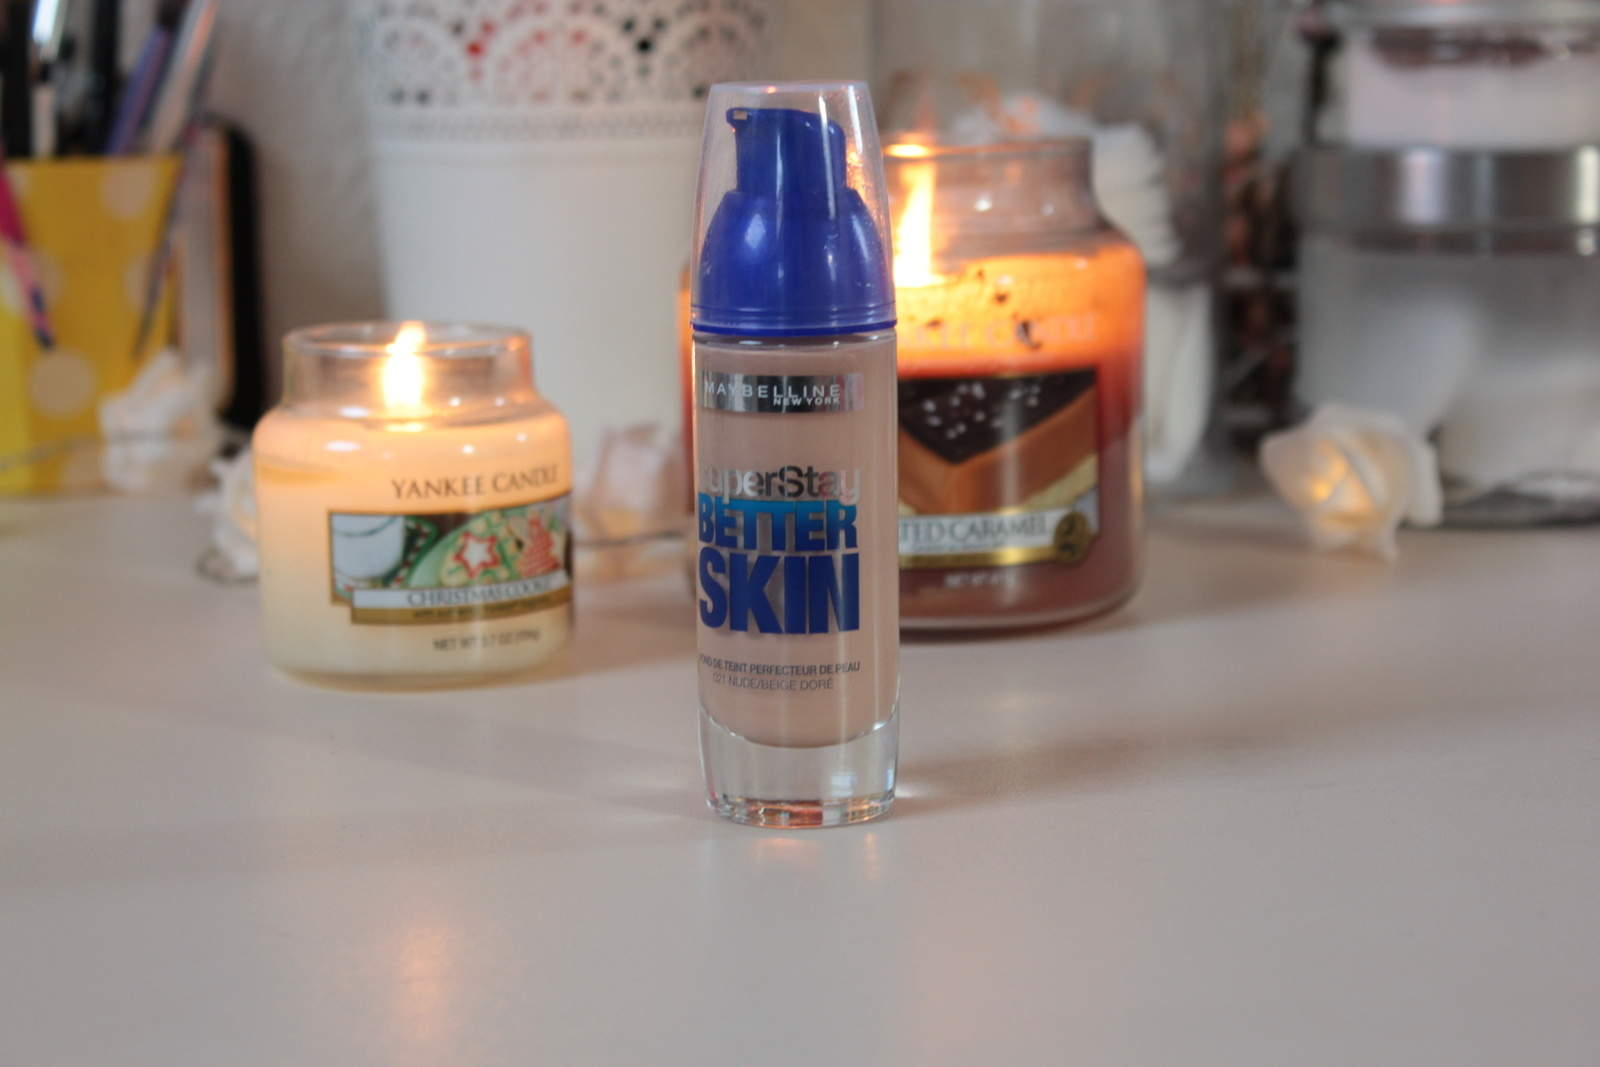 Revue FDT • Super Stay Better Skin - Gemey Maybelline ♡